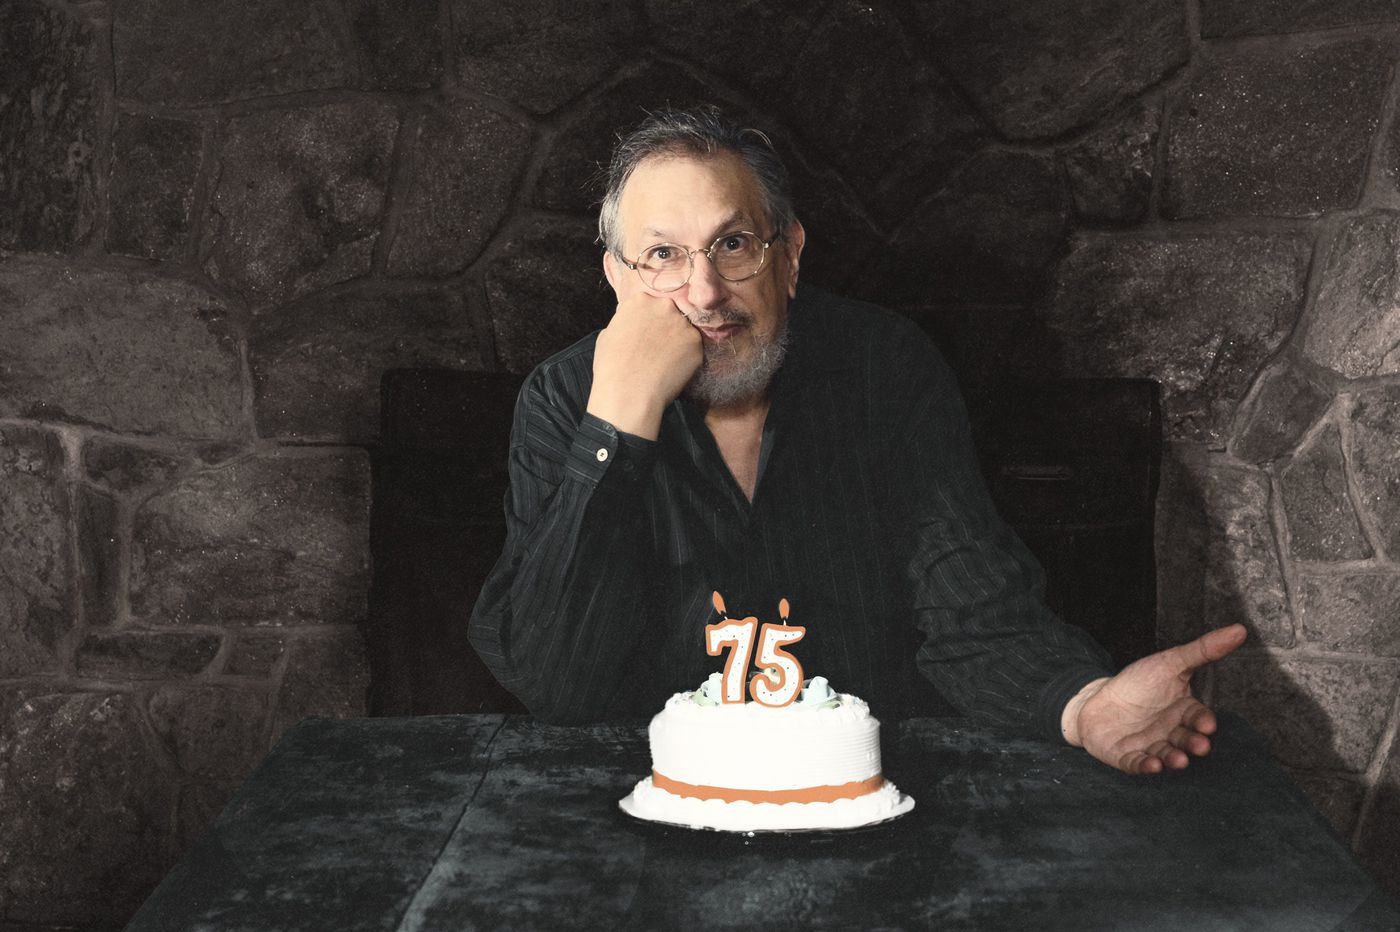 David Bromberg will celebrate his 75th birthday at Wilmington's storied Arden Gild Hall